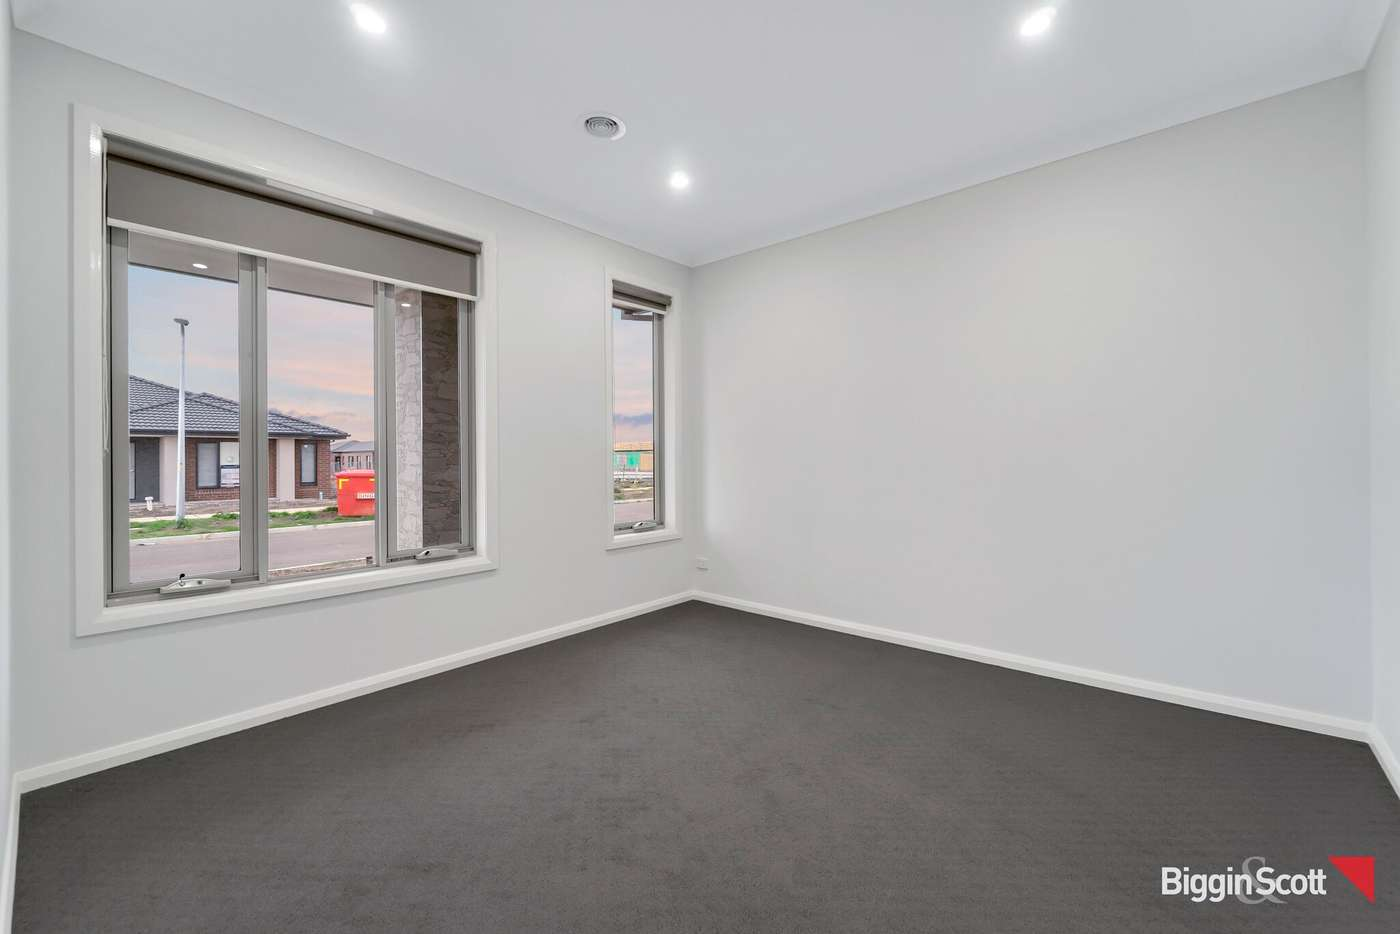 Seventh view of Homely house listing, 15 Midewin Way, Wyndham Vale VIC 3024